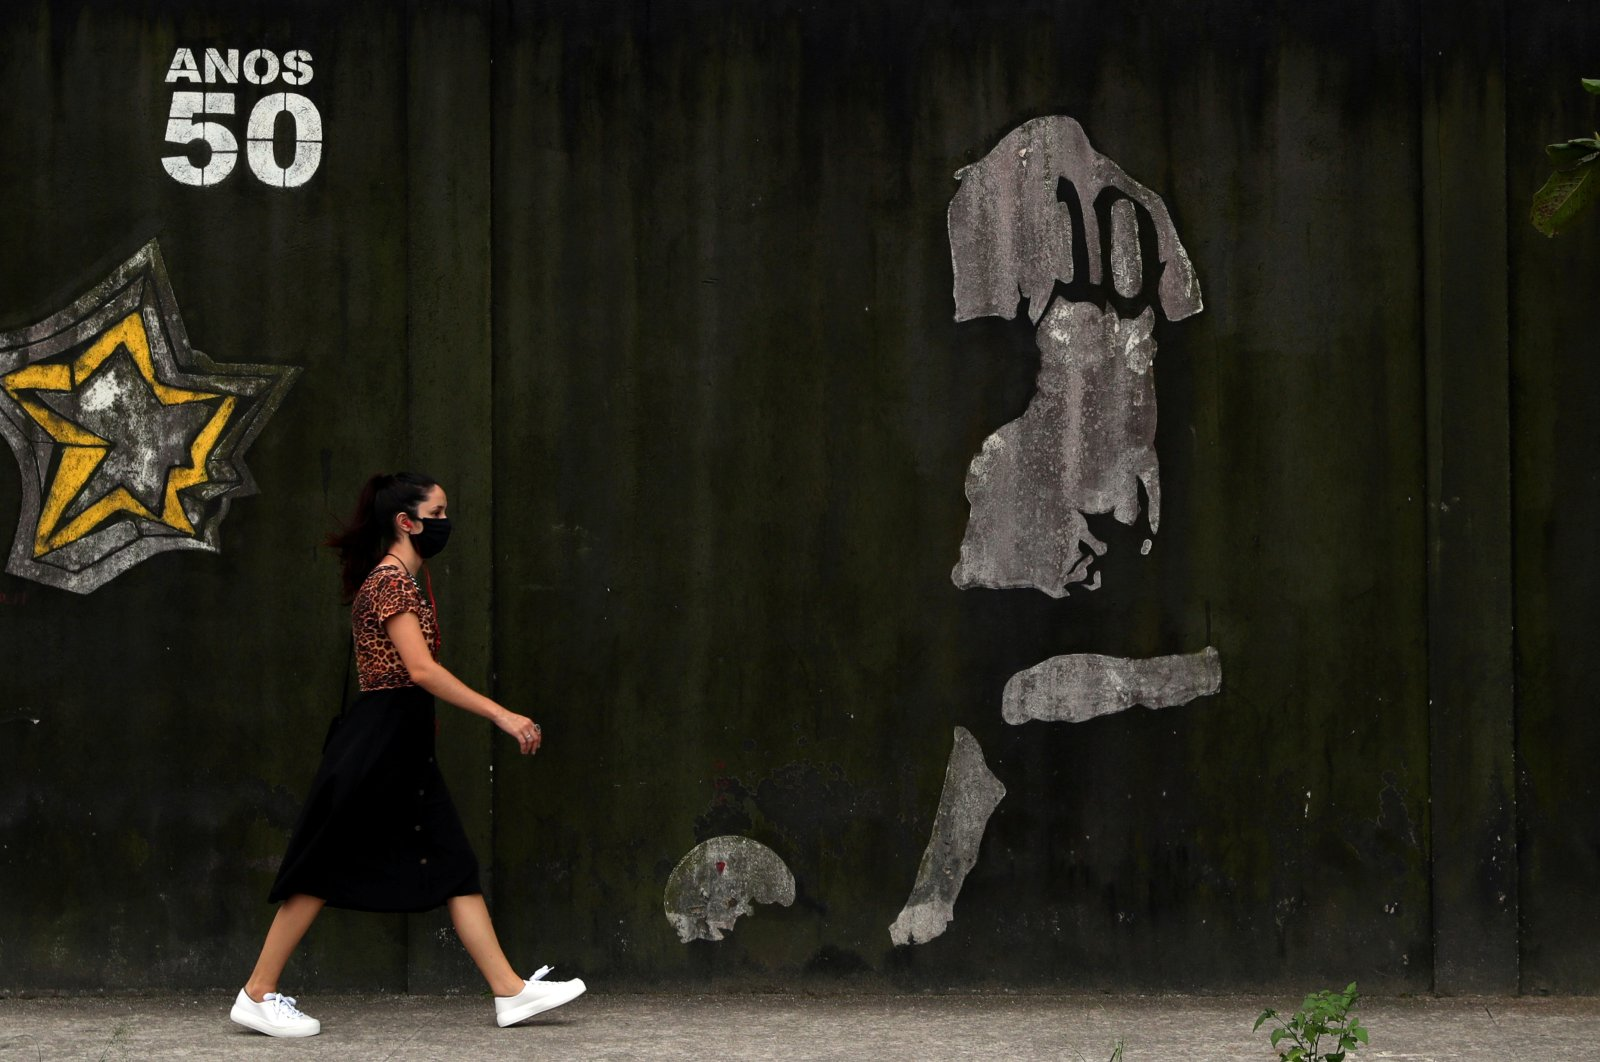 A woman walks by a mural depicting Brazilian soccer legend Pele in his iconic number 10 shirt, in Santos, Brazil, Oct. 20, 2020. (Reuters Photo)